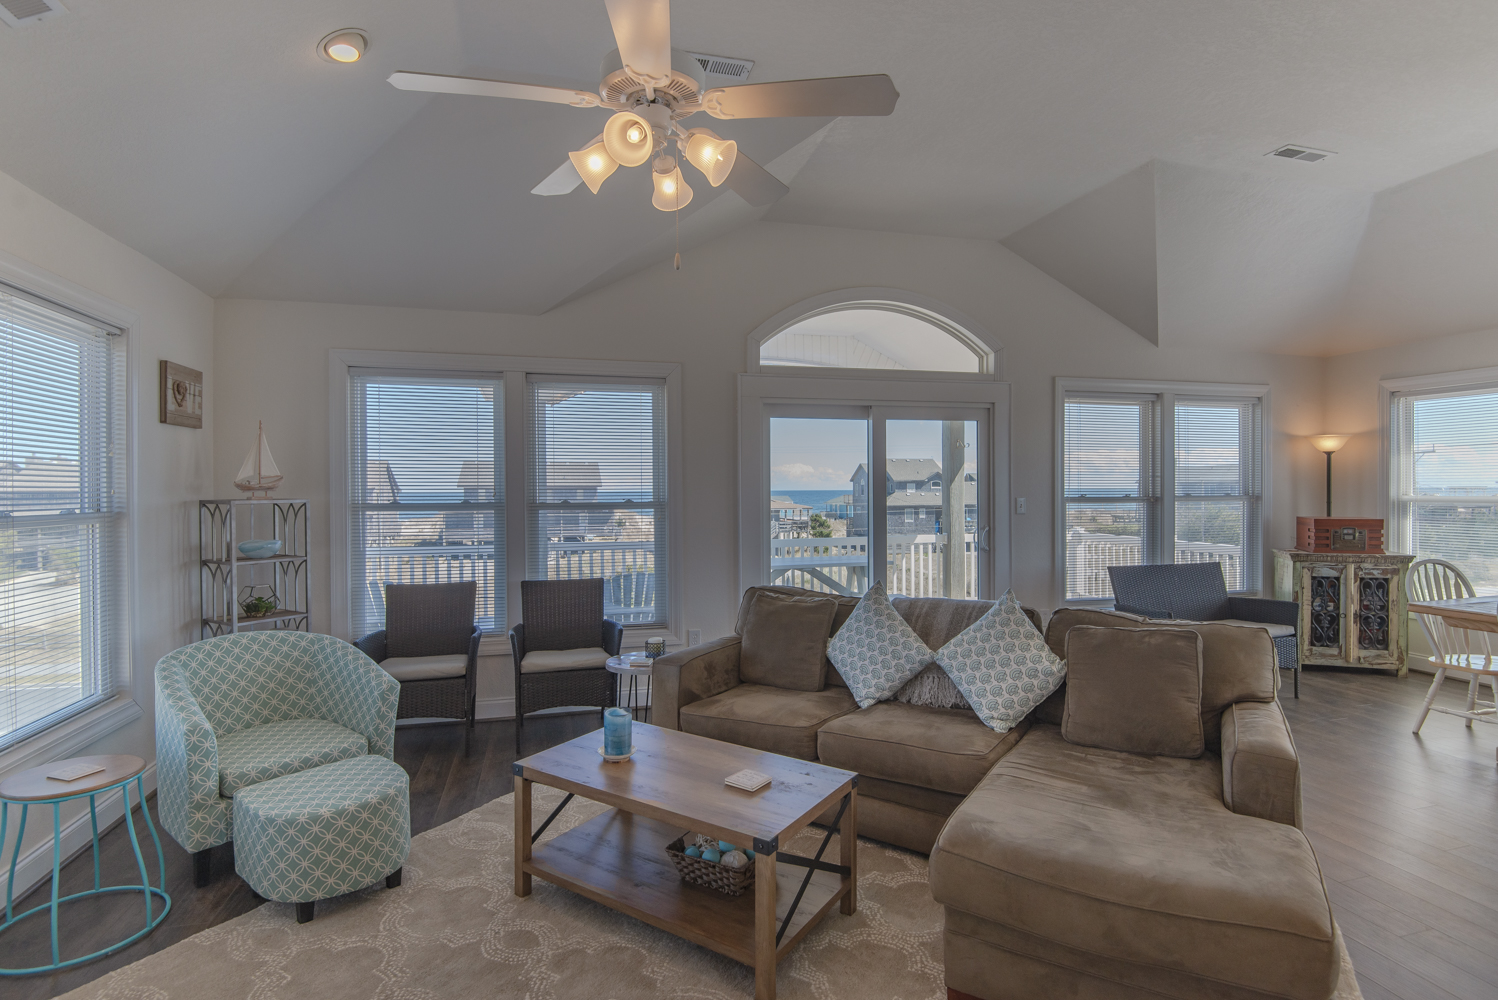 249 Blue Danube Outer Banks Vacation Rental In Nags Head